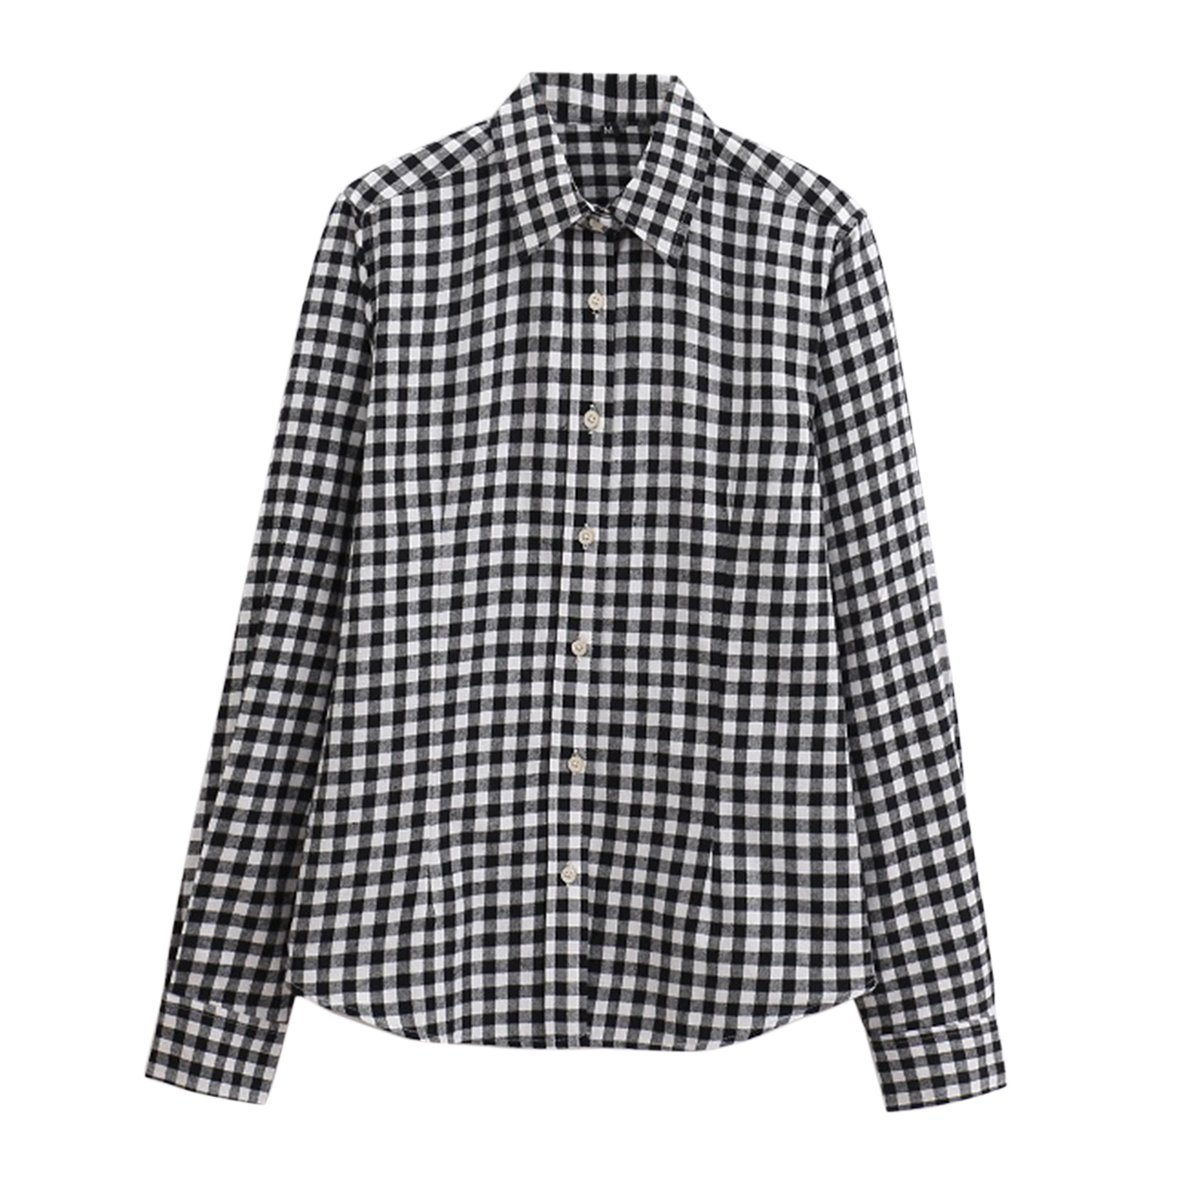 1940s Blouses and Tops Cekaso Womens Gingham Shirt Cotton Slim Fit Long Sleeve Button Up Plaid Shirt $24.99 AT vintagedancer.com